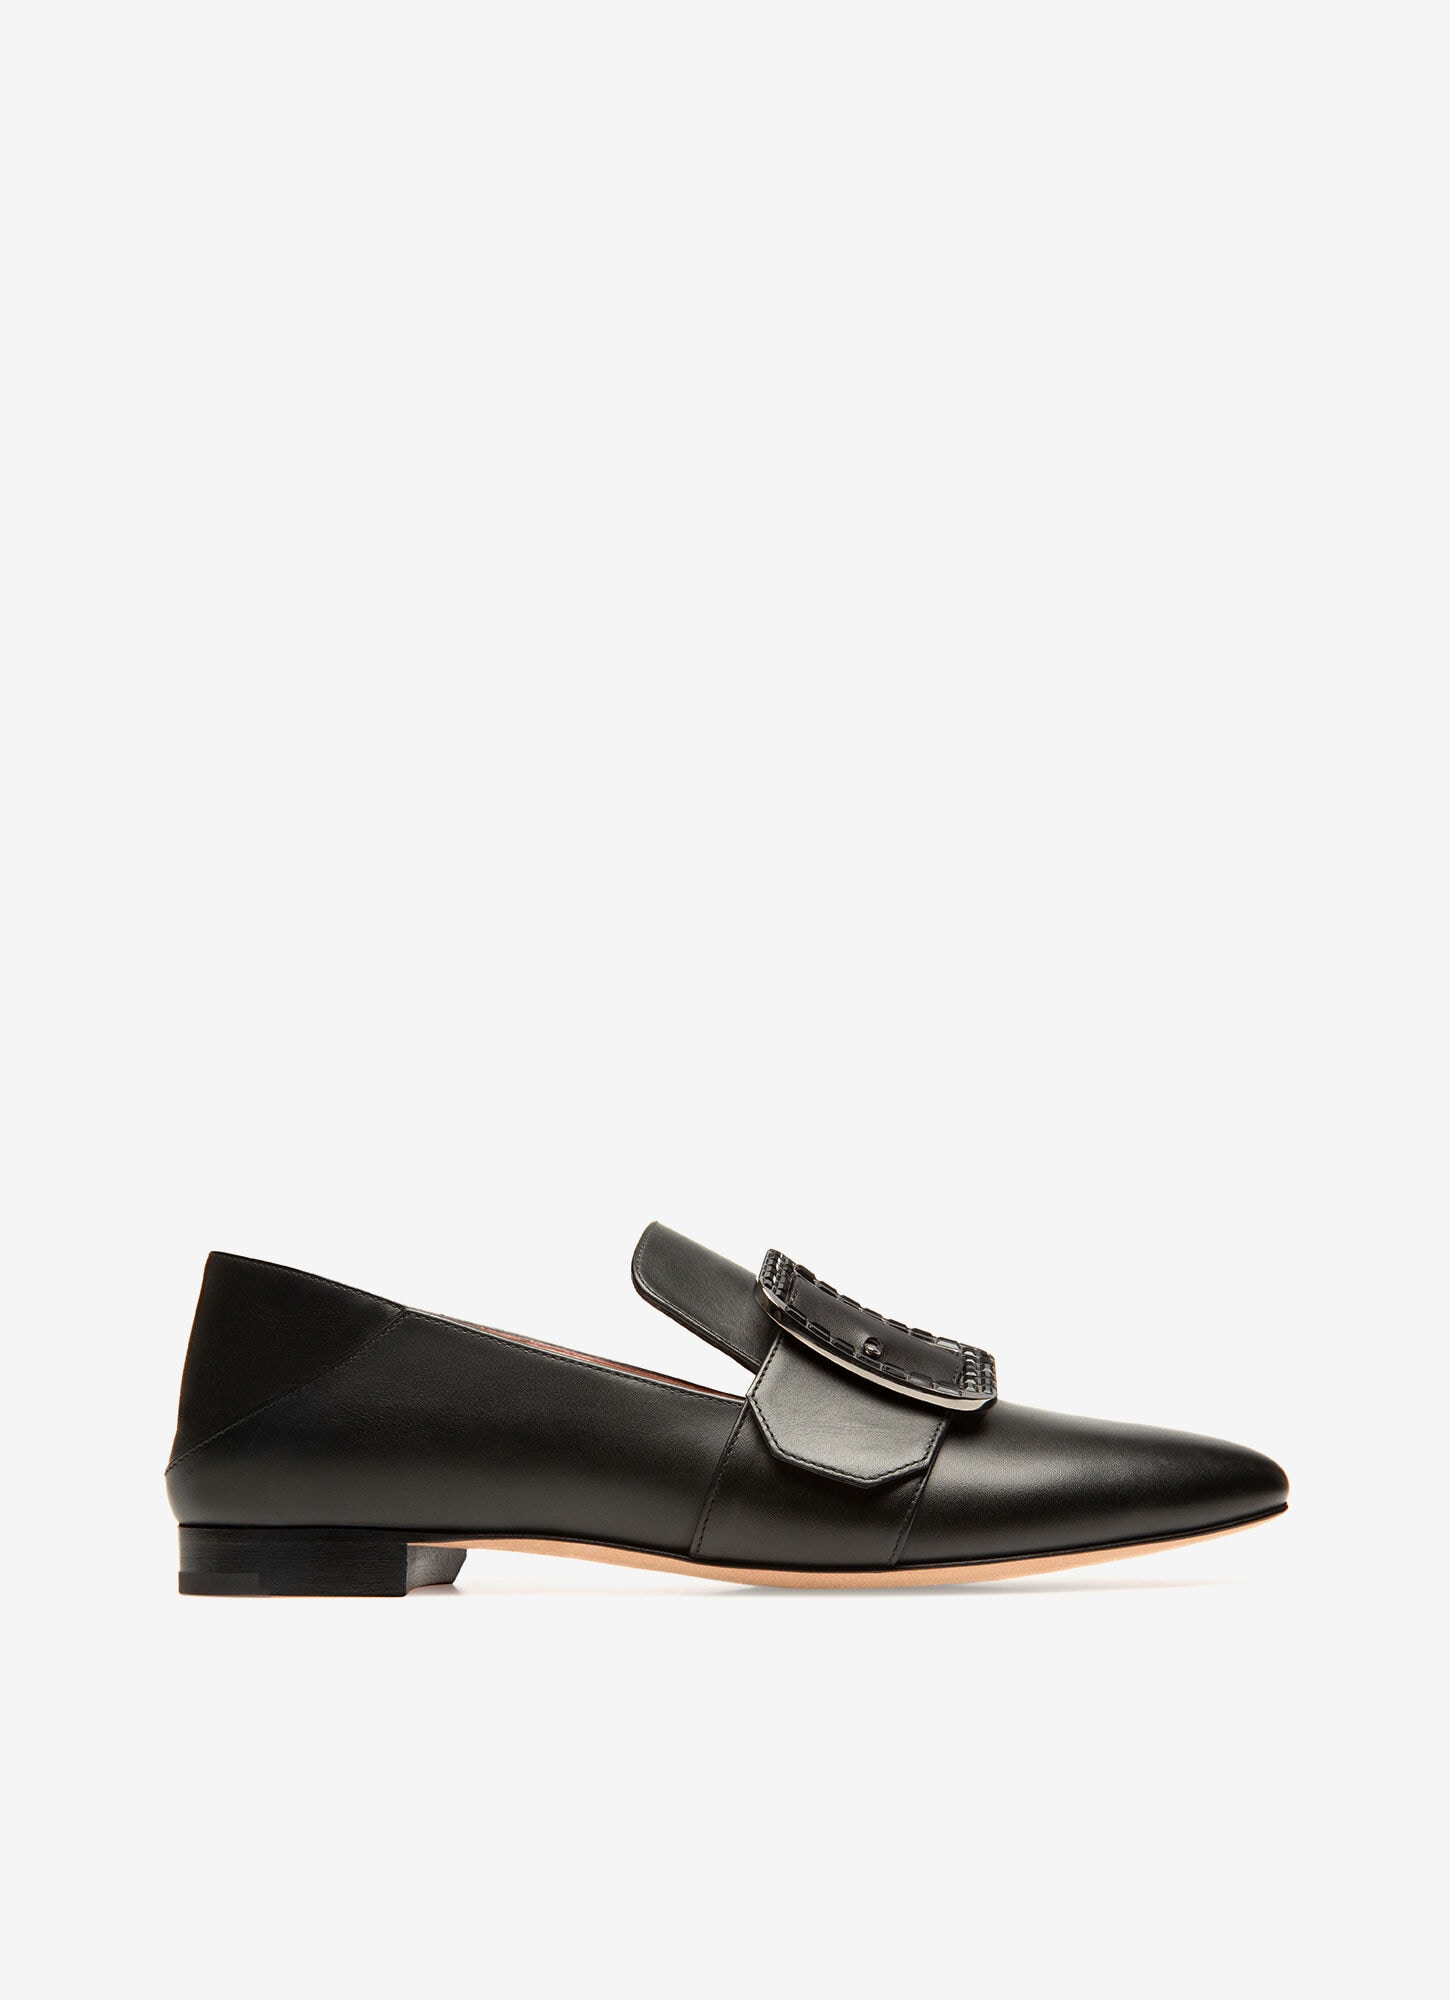 Womens Loafers | Black Leather | Bally